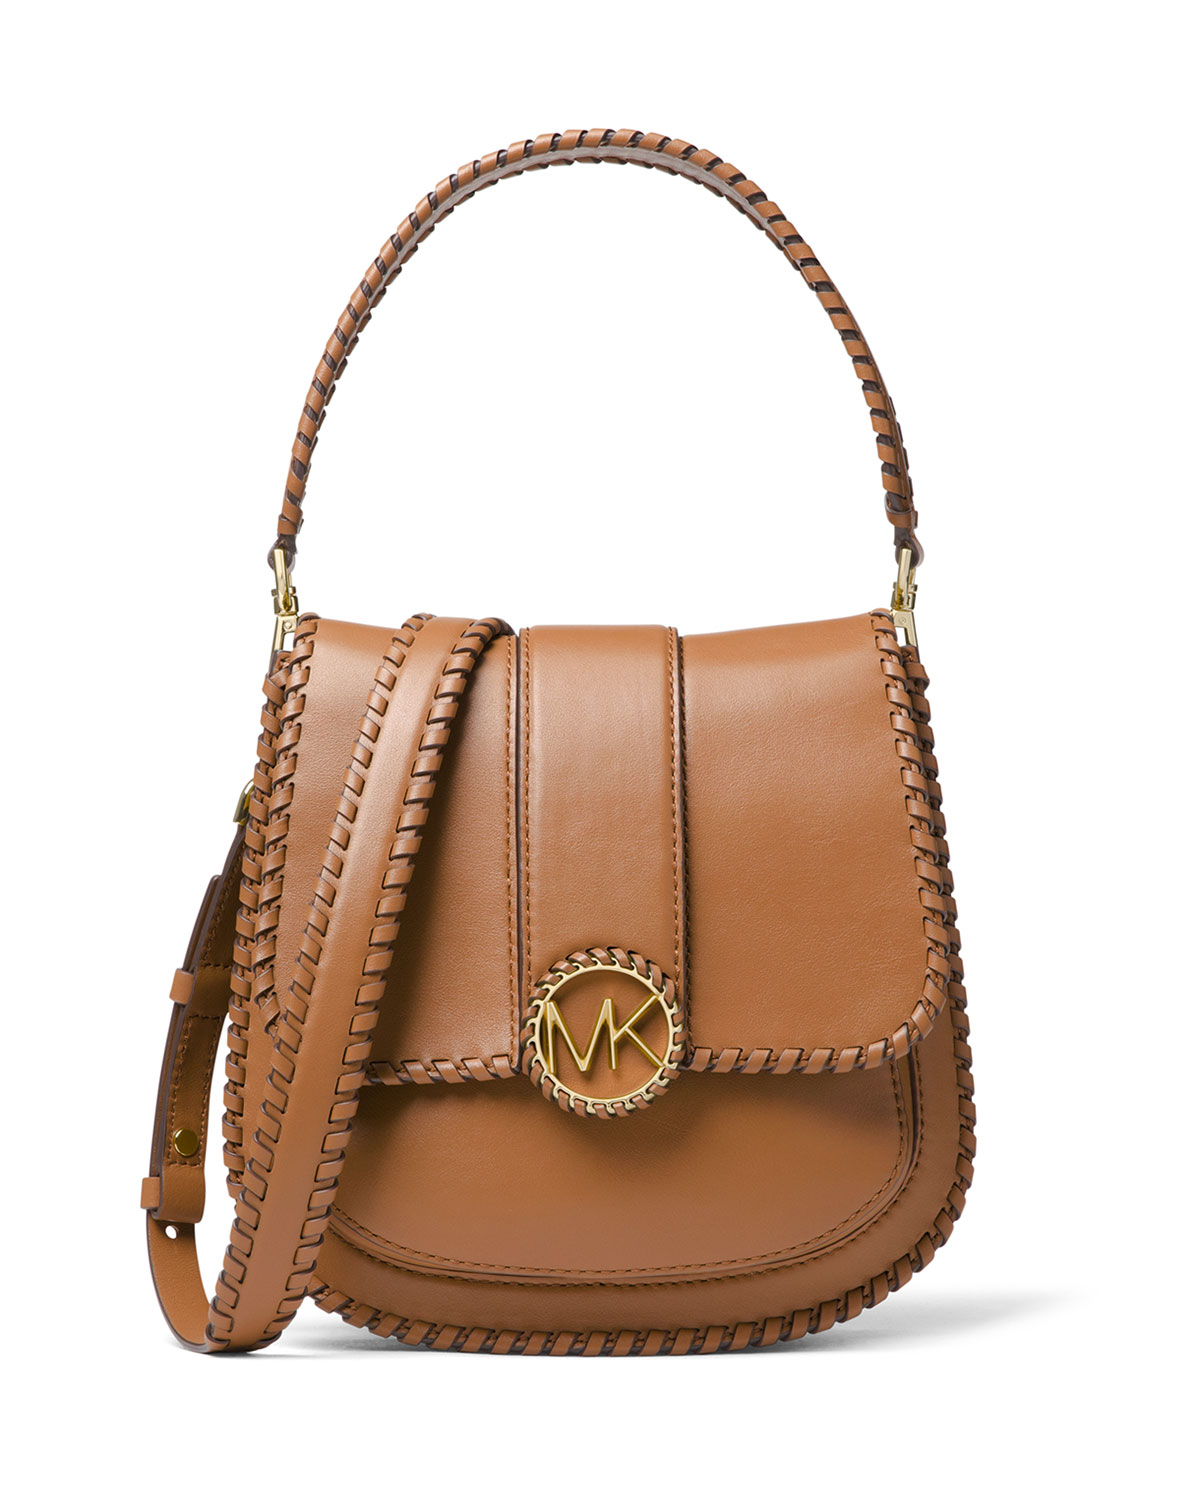 6c5ec70c5664 MICHAEL Michael Kors Lillie Medium Leather Flap Crossbody Messenger ...